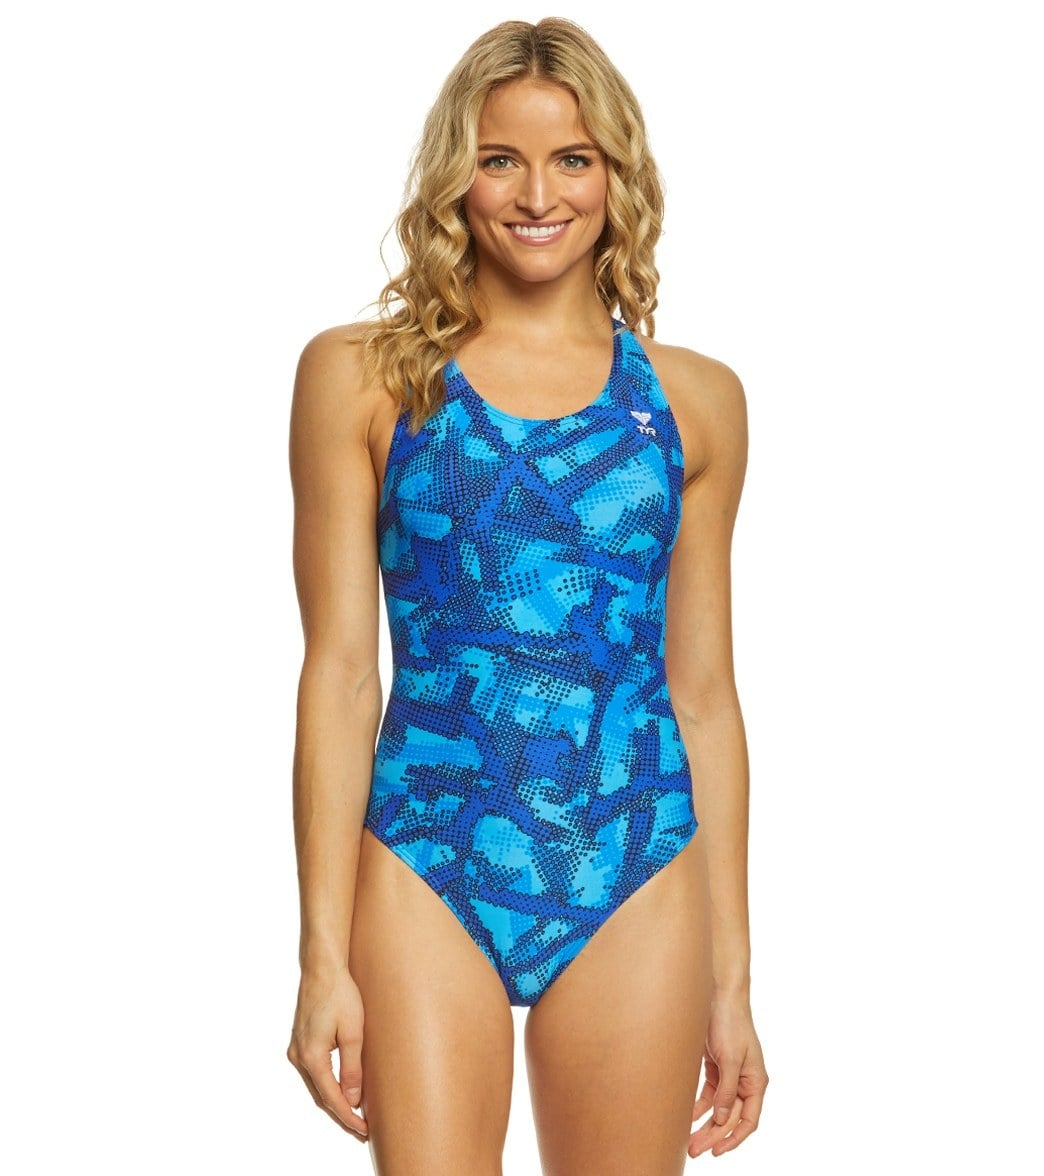 03a8cc86f9221 TYR Women s Vesuvius Maxfit One Piece Swimsuit at SwimOutlet.com - Free  Shipping